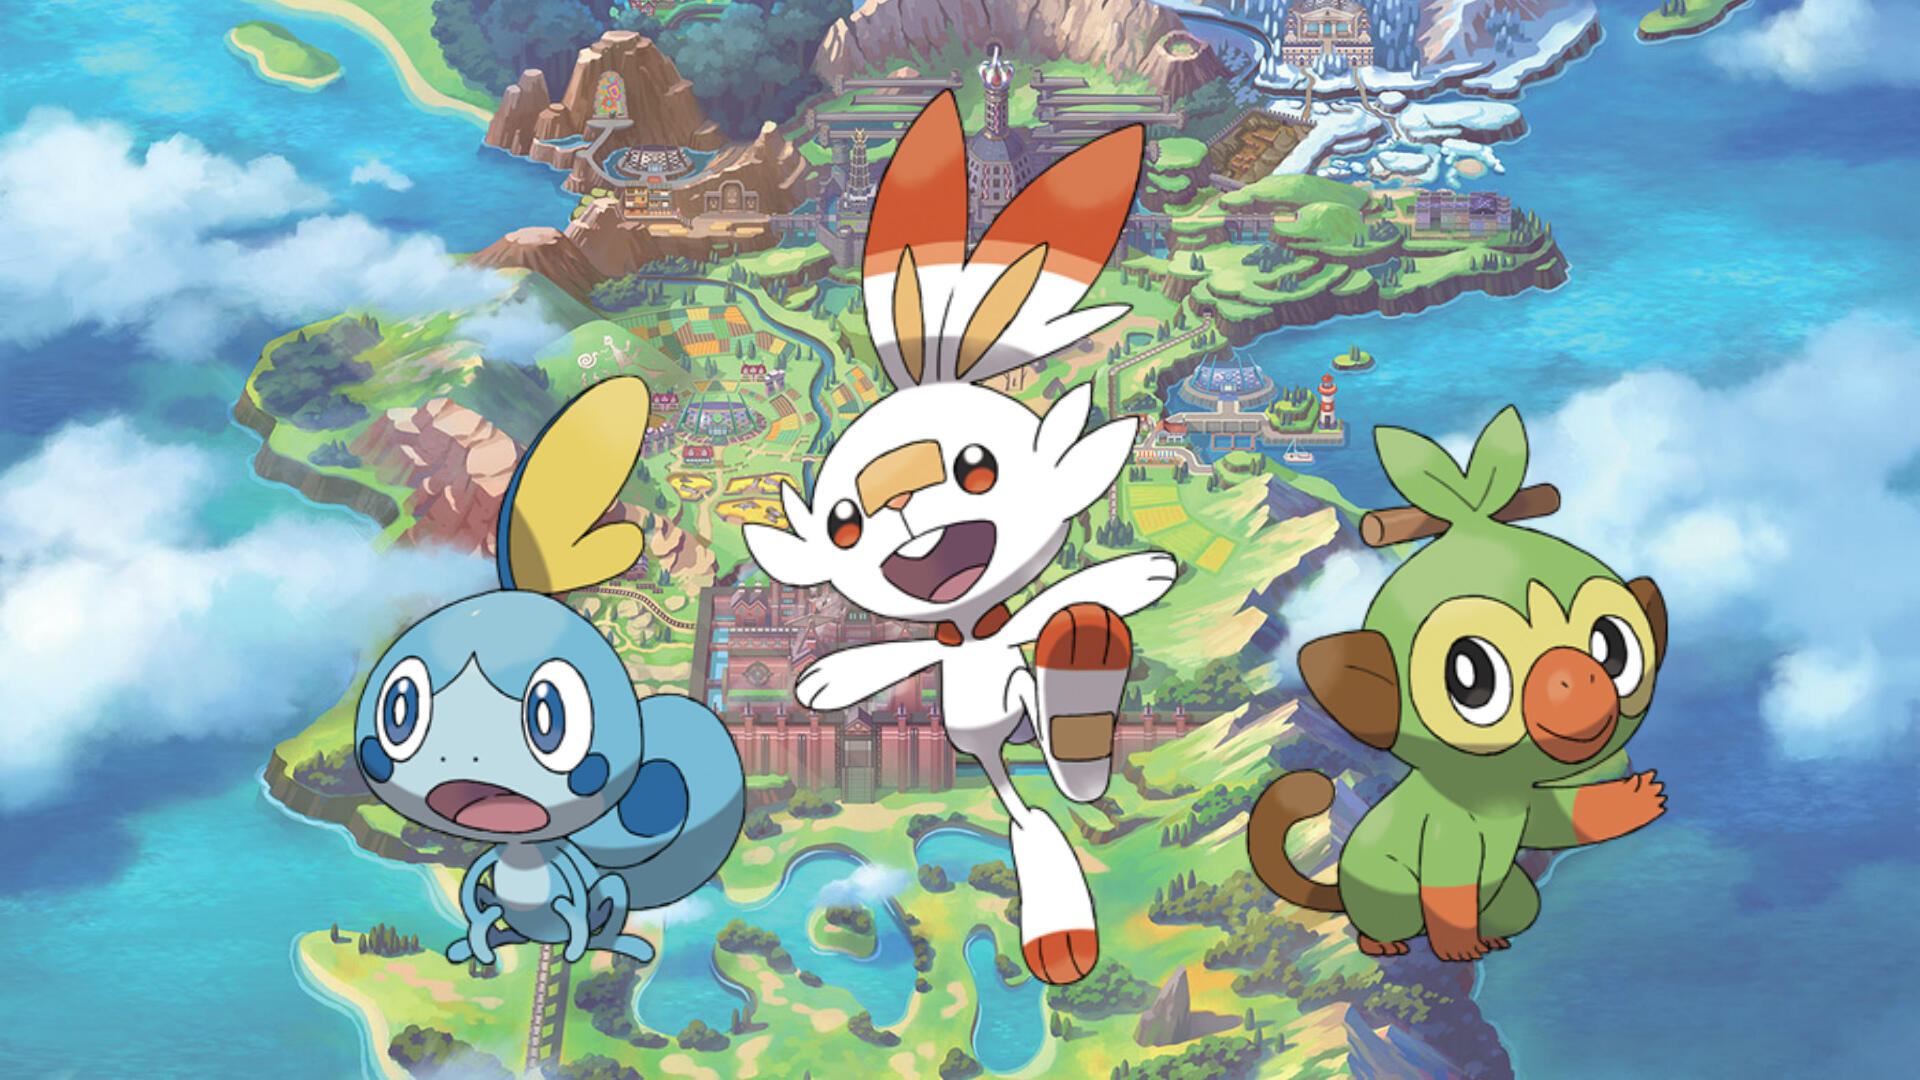 Pokemon Sword and Shield Producer Again Responds To Backlash Over Not Every Pokemon Making The Pokedex